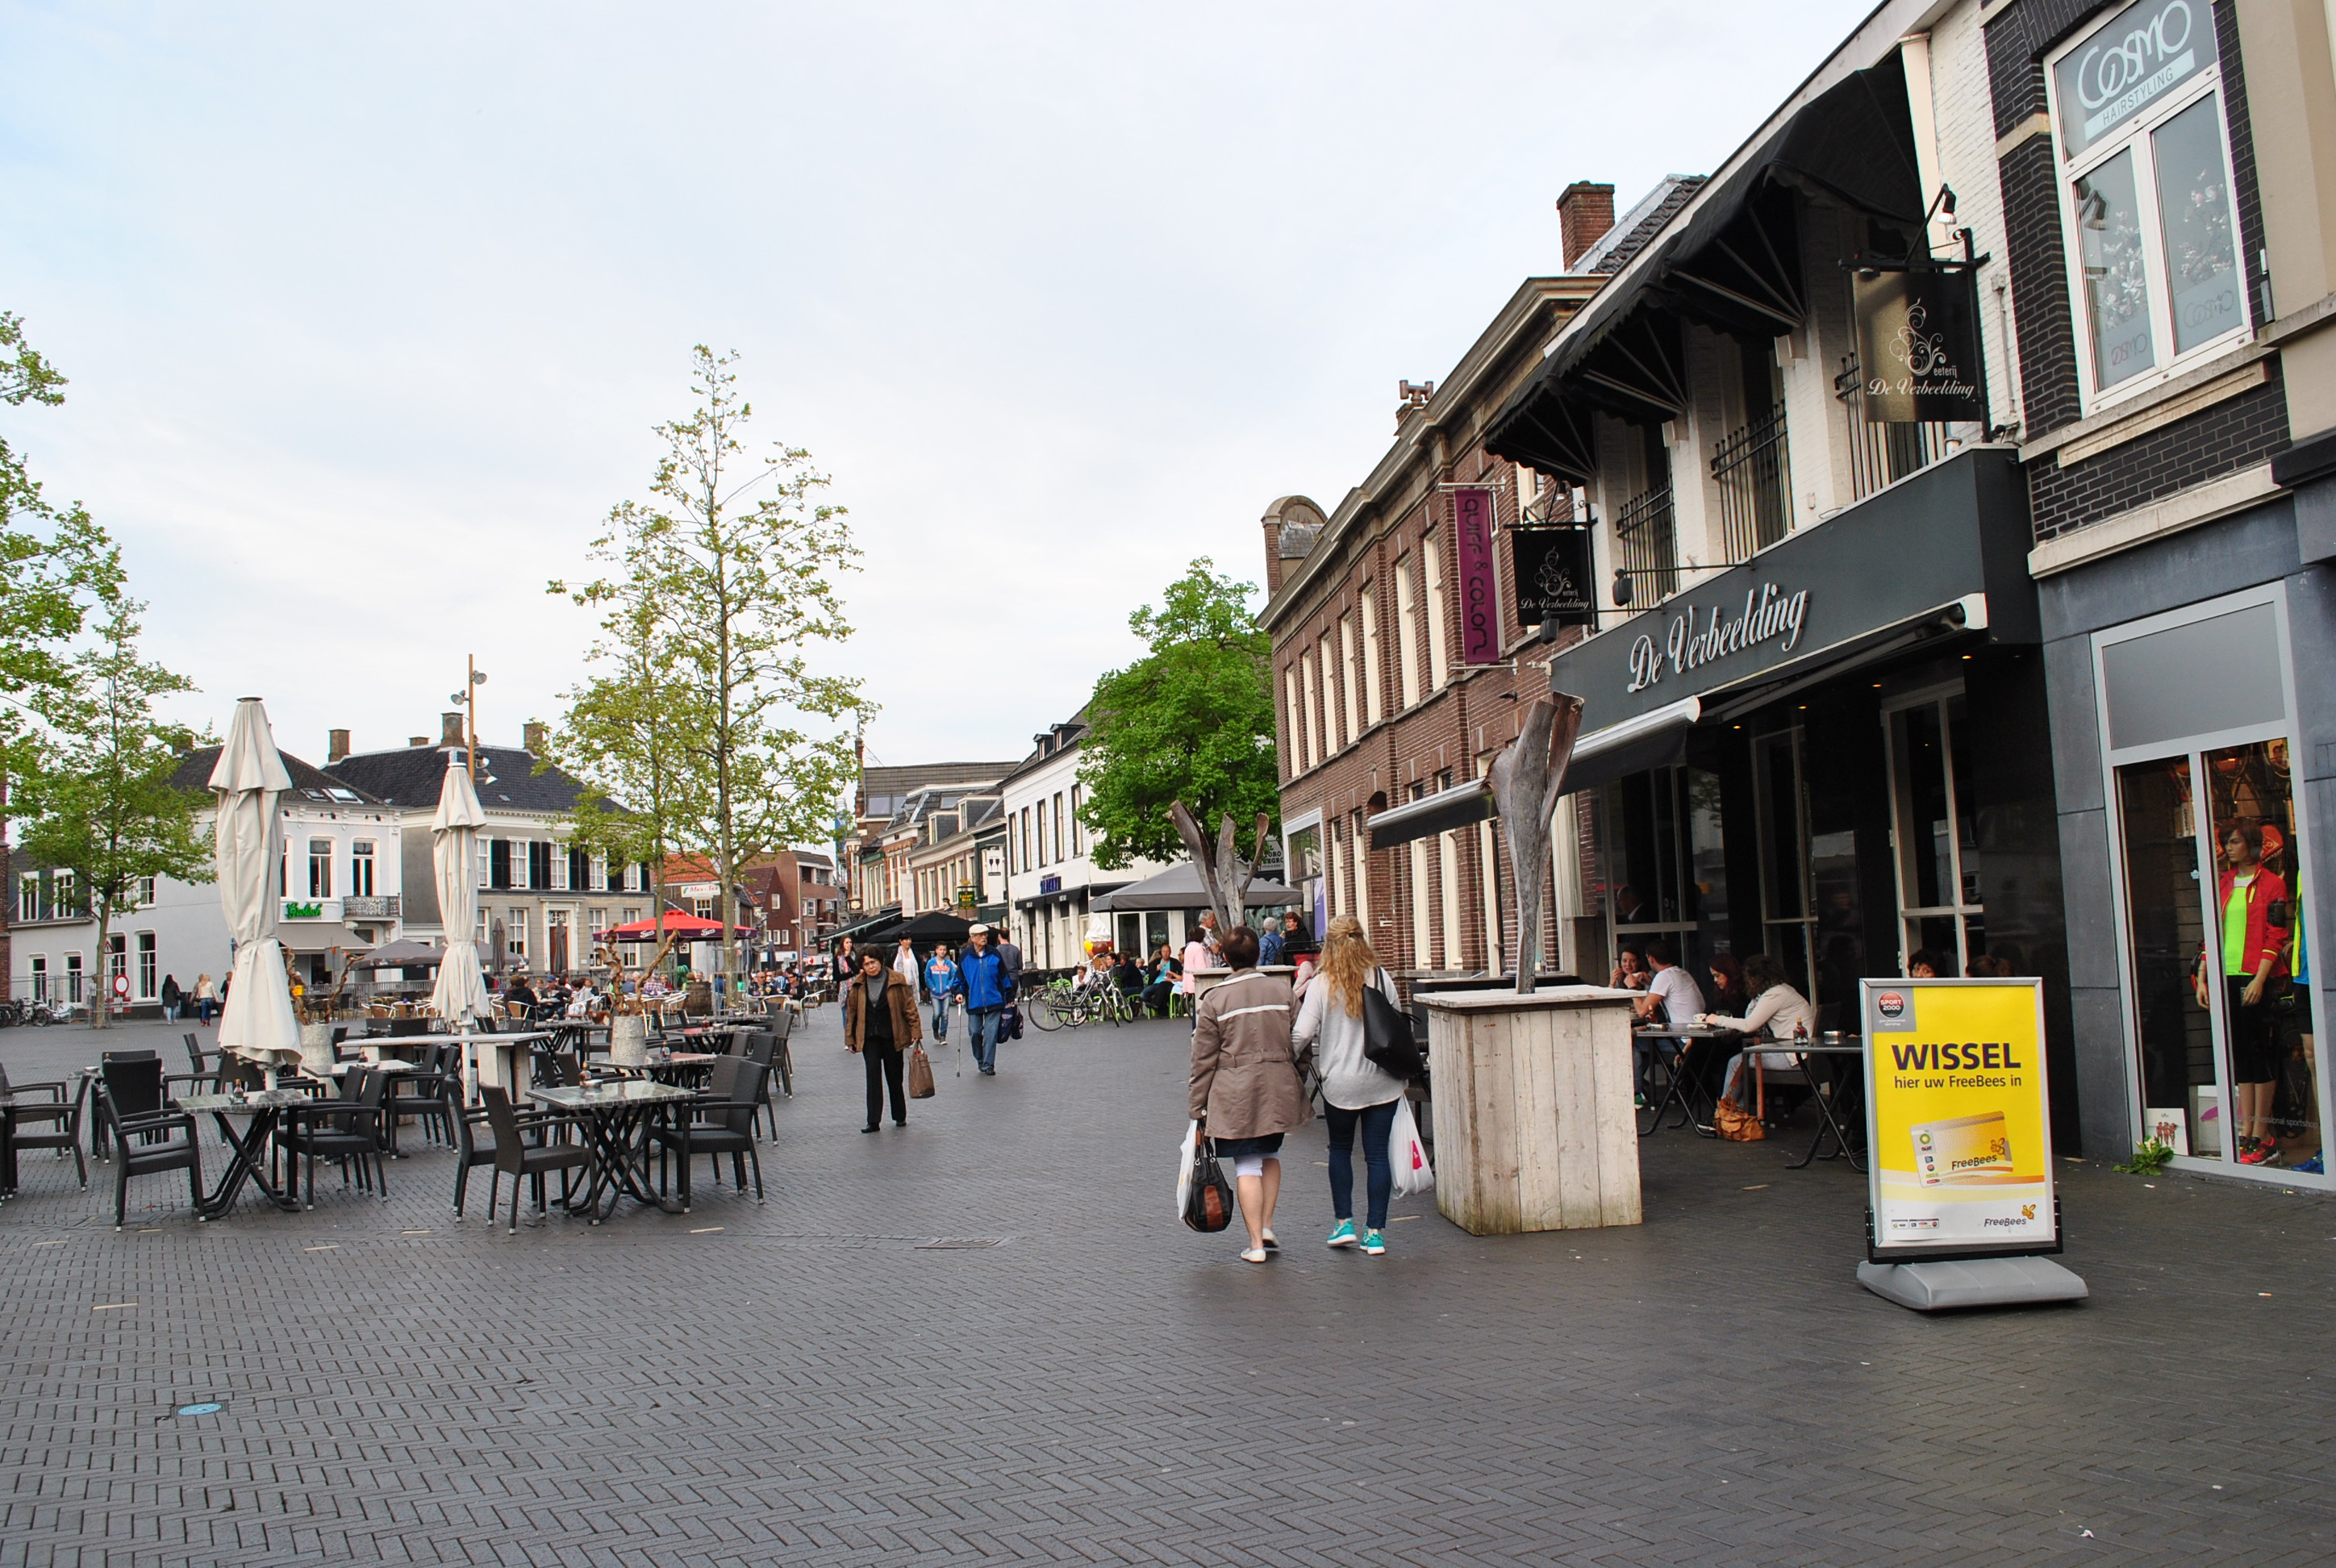 De markt: then and now